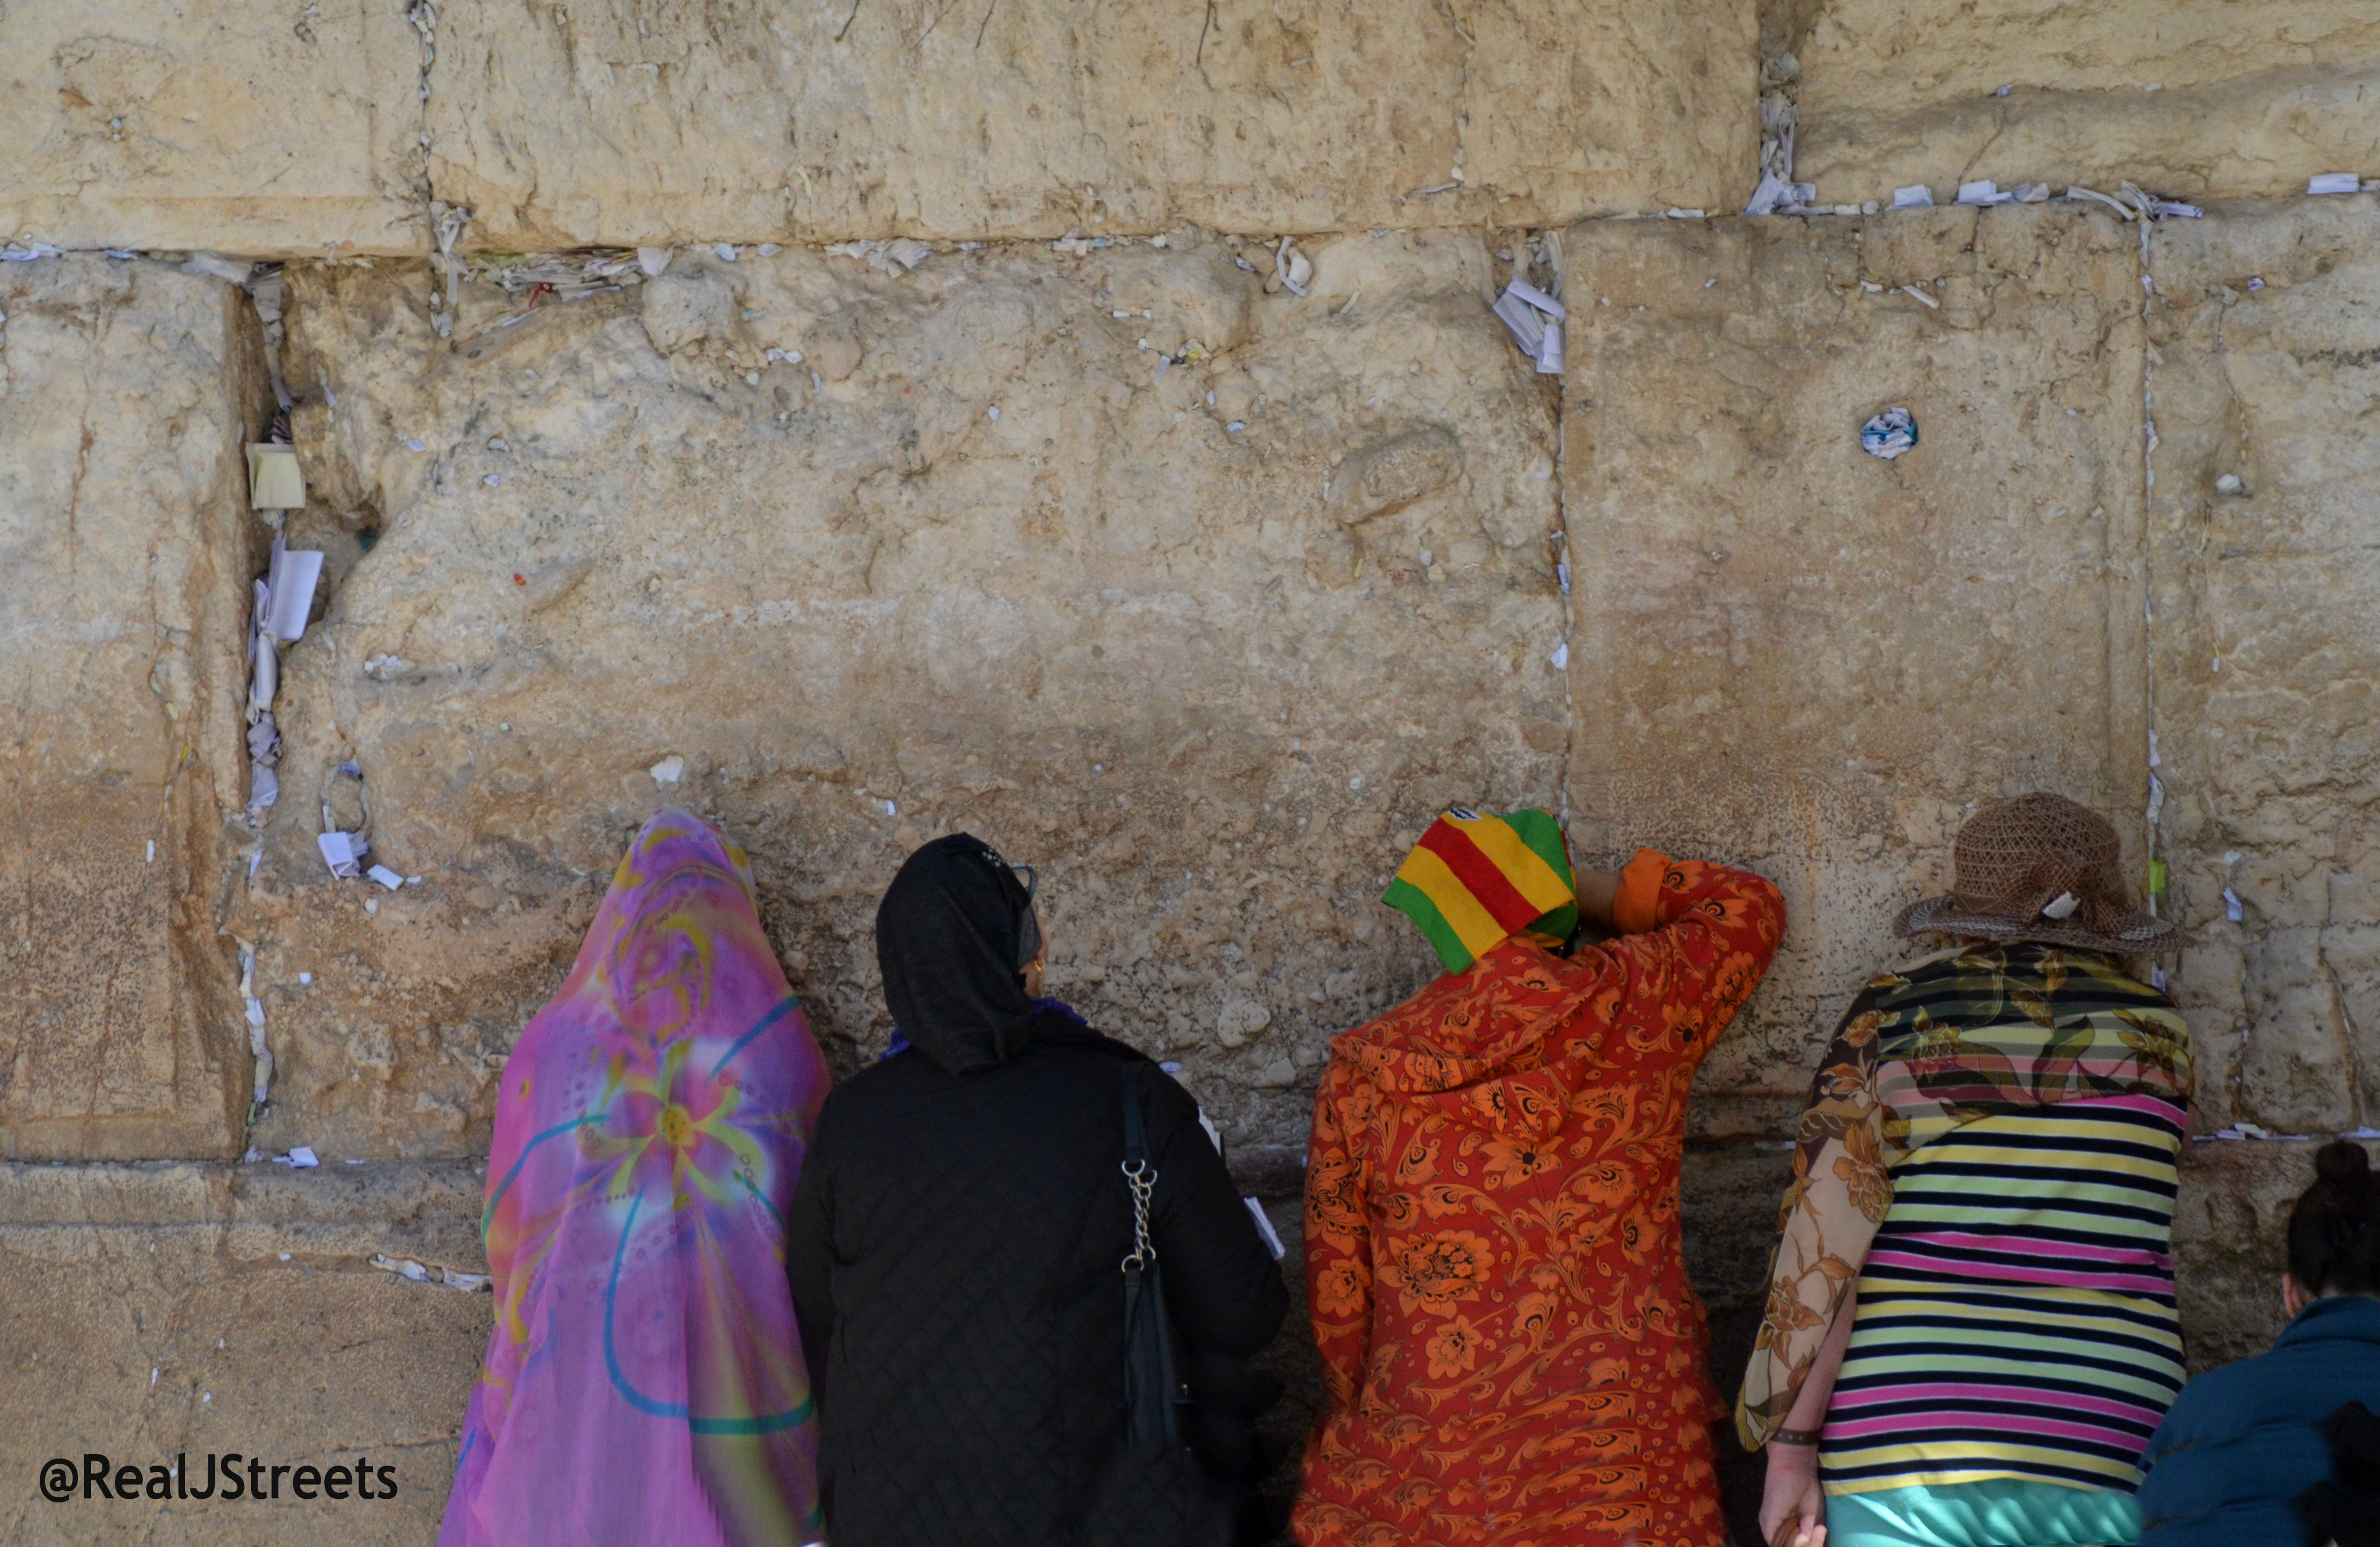 image women in colorful clothing at kotel